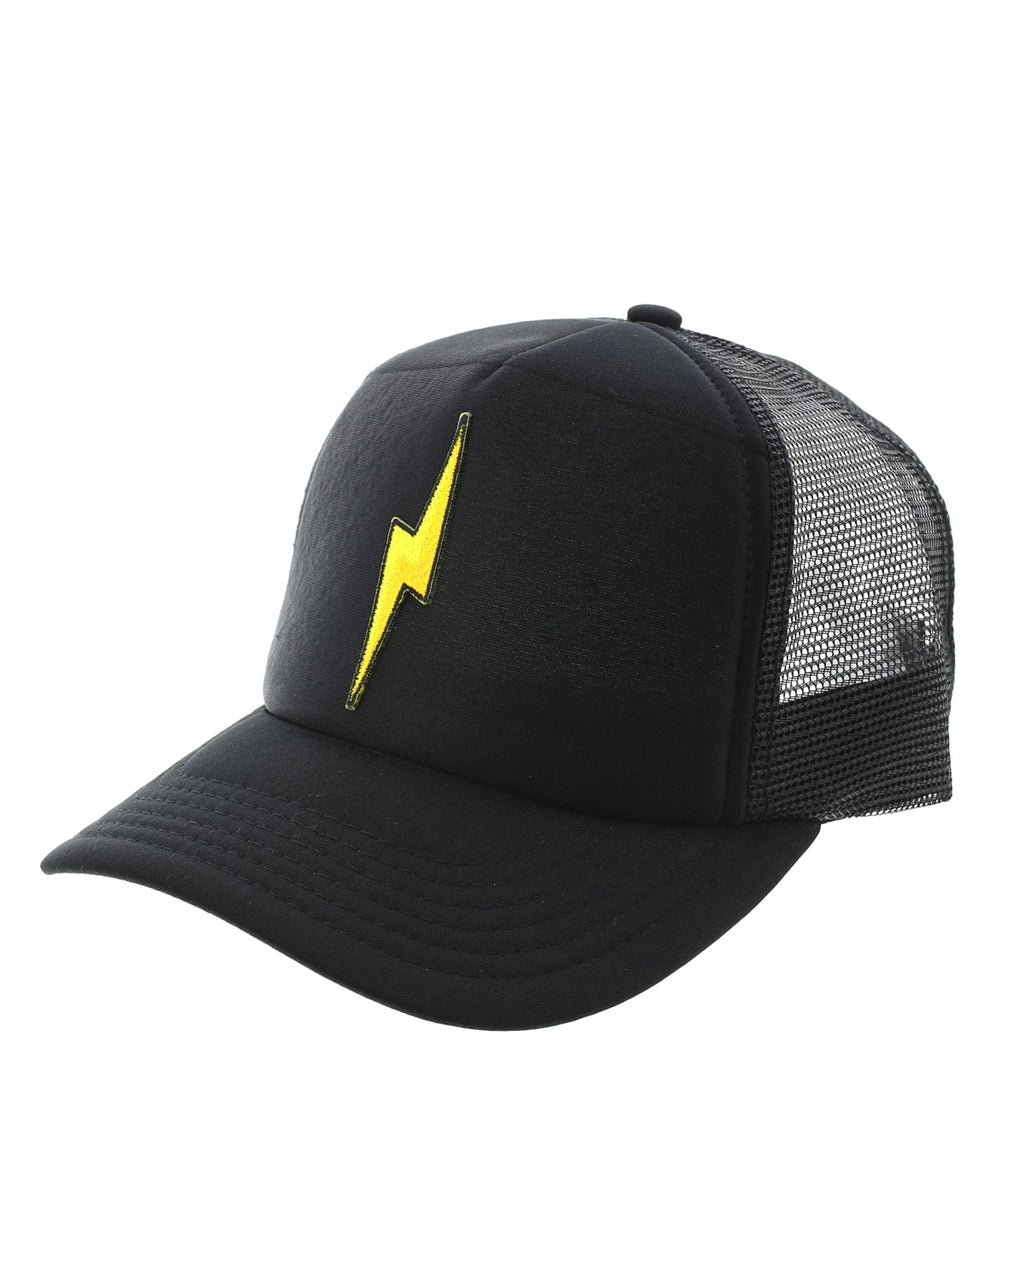 Lightning Bolt Patch Trucker Hat